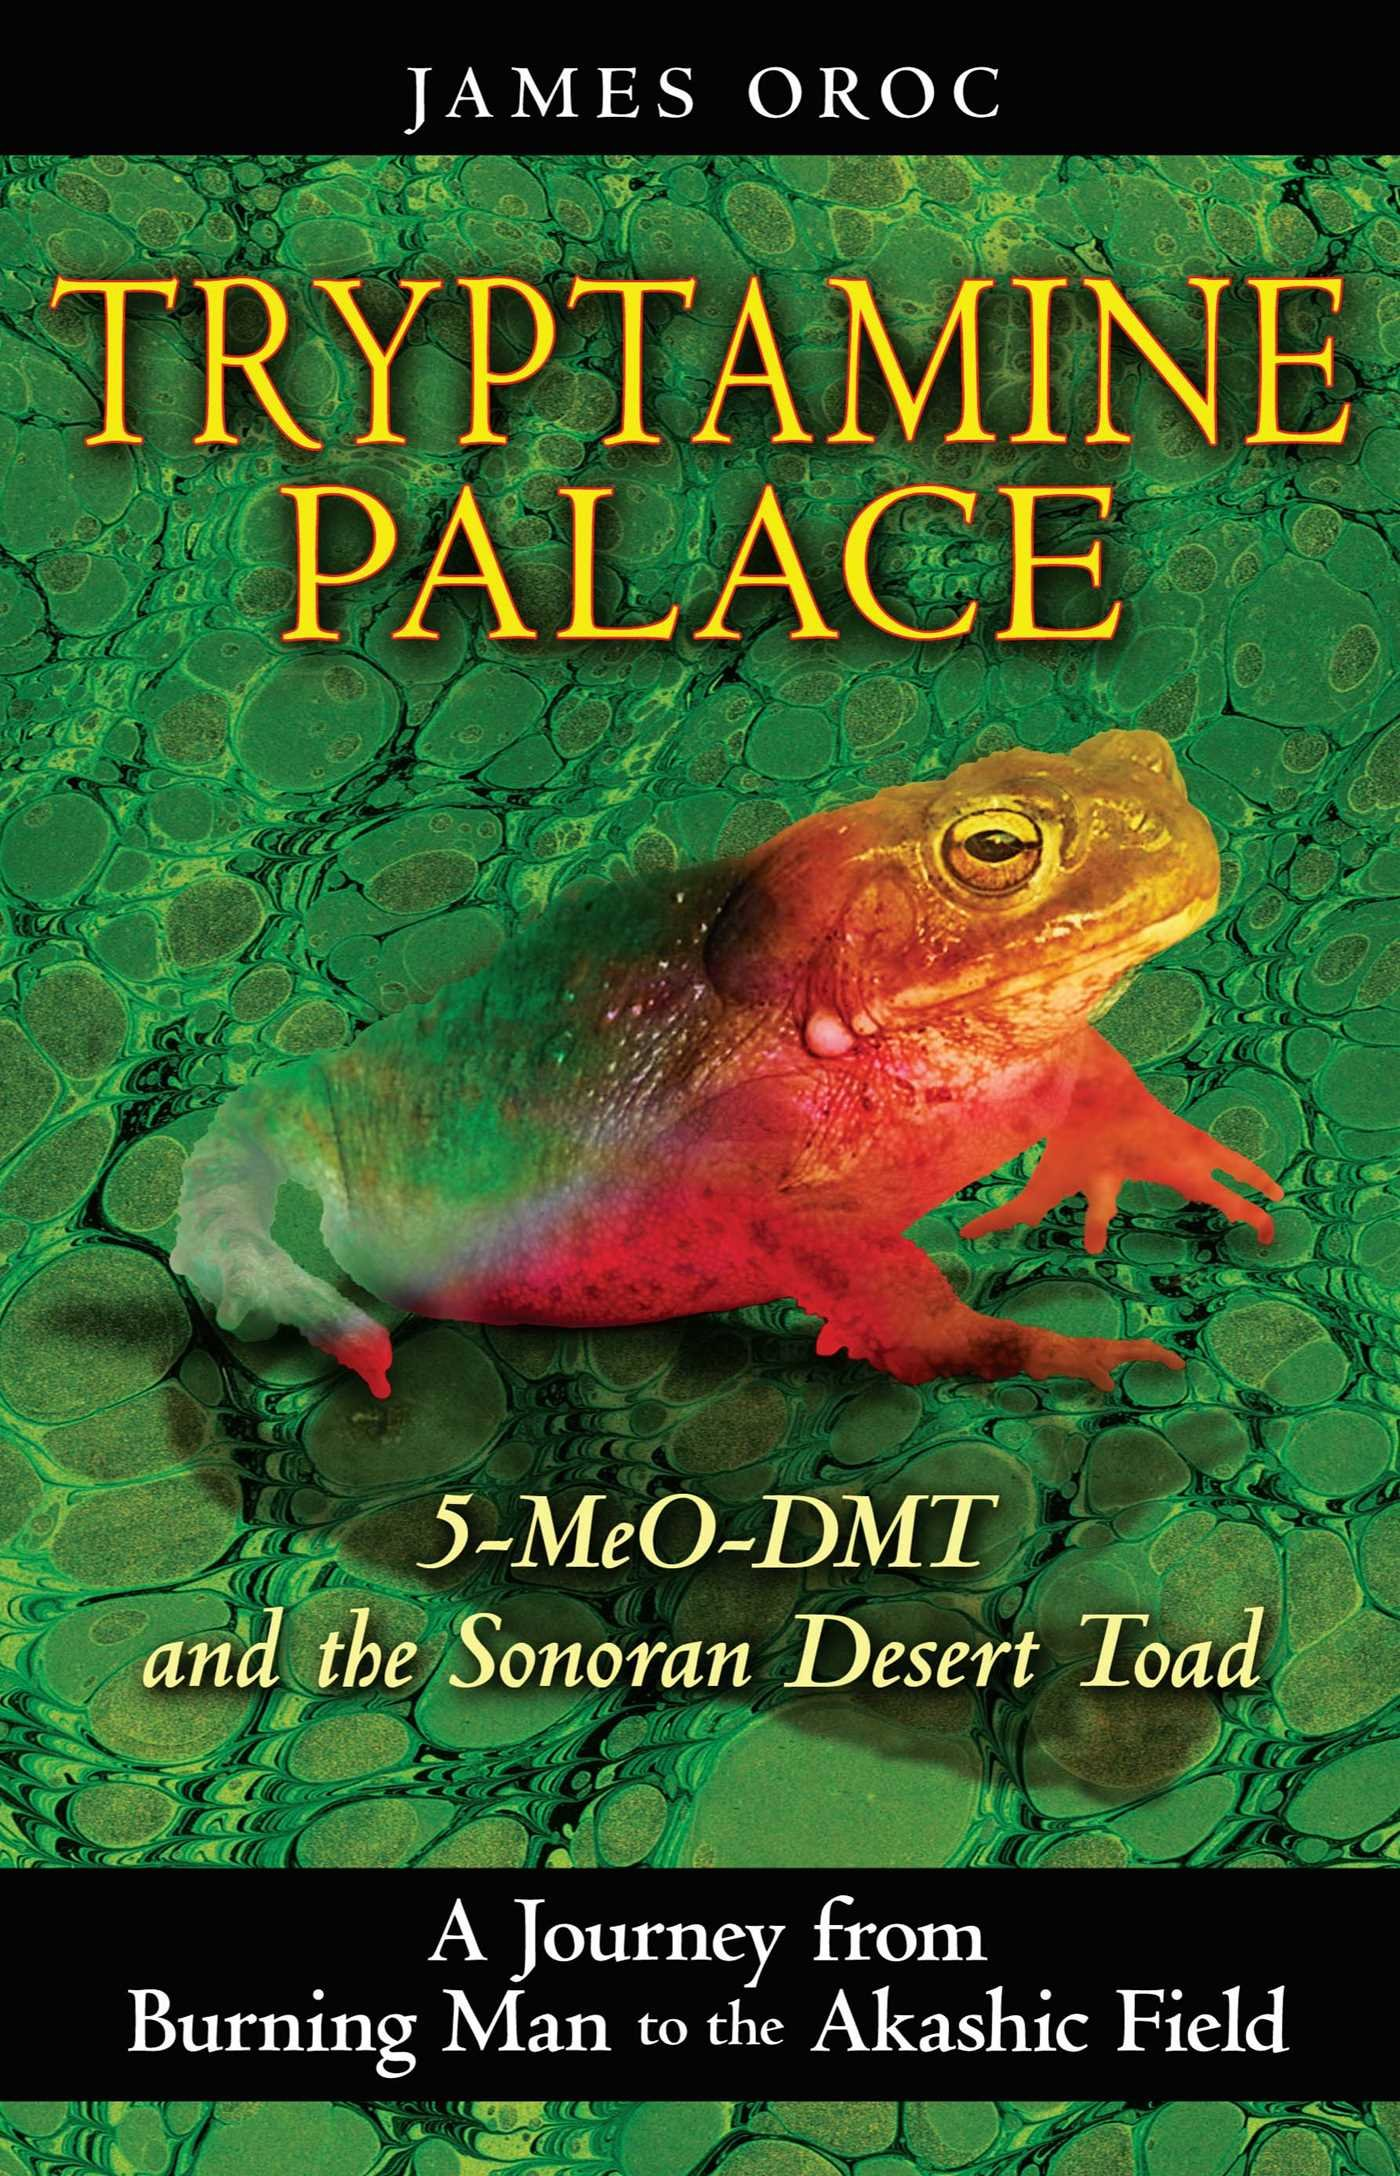 Download Tryptamine Palace: 5-MeO-DMT and the Sonoran Desert Toad PDF